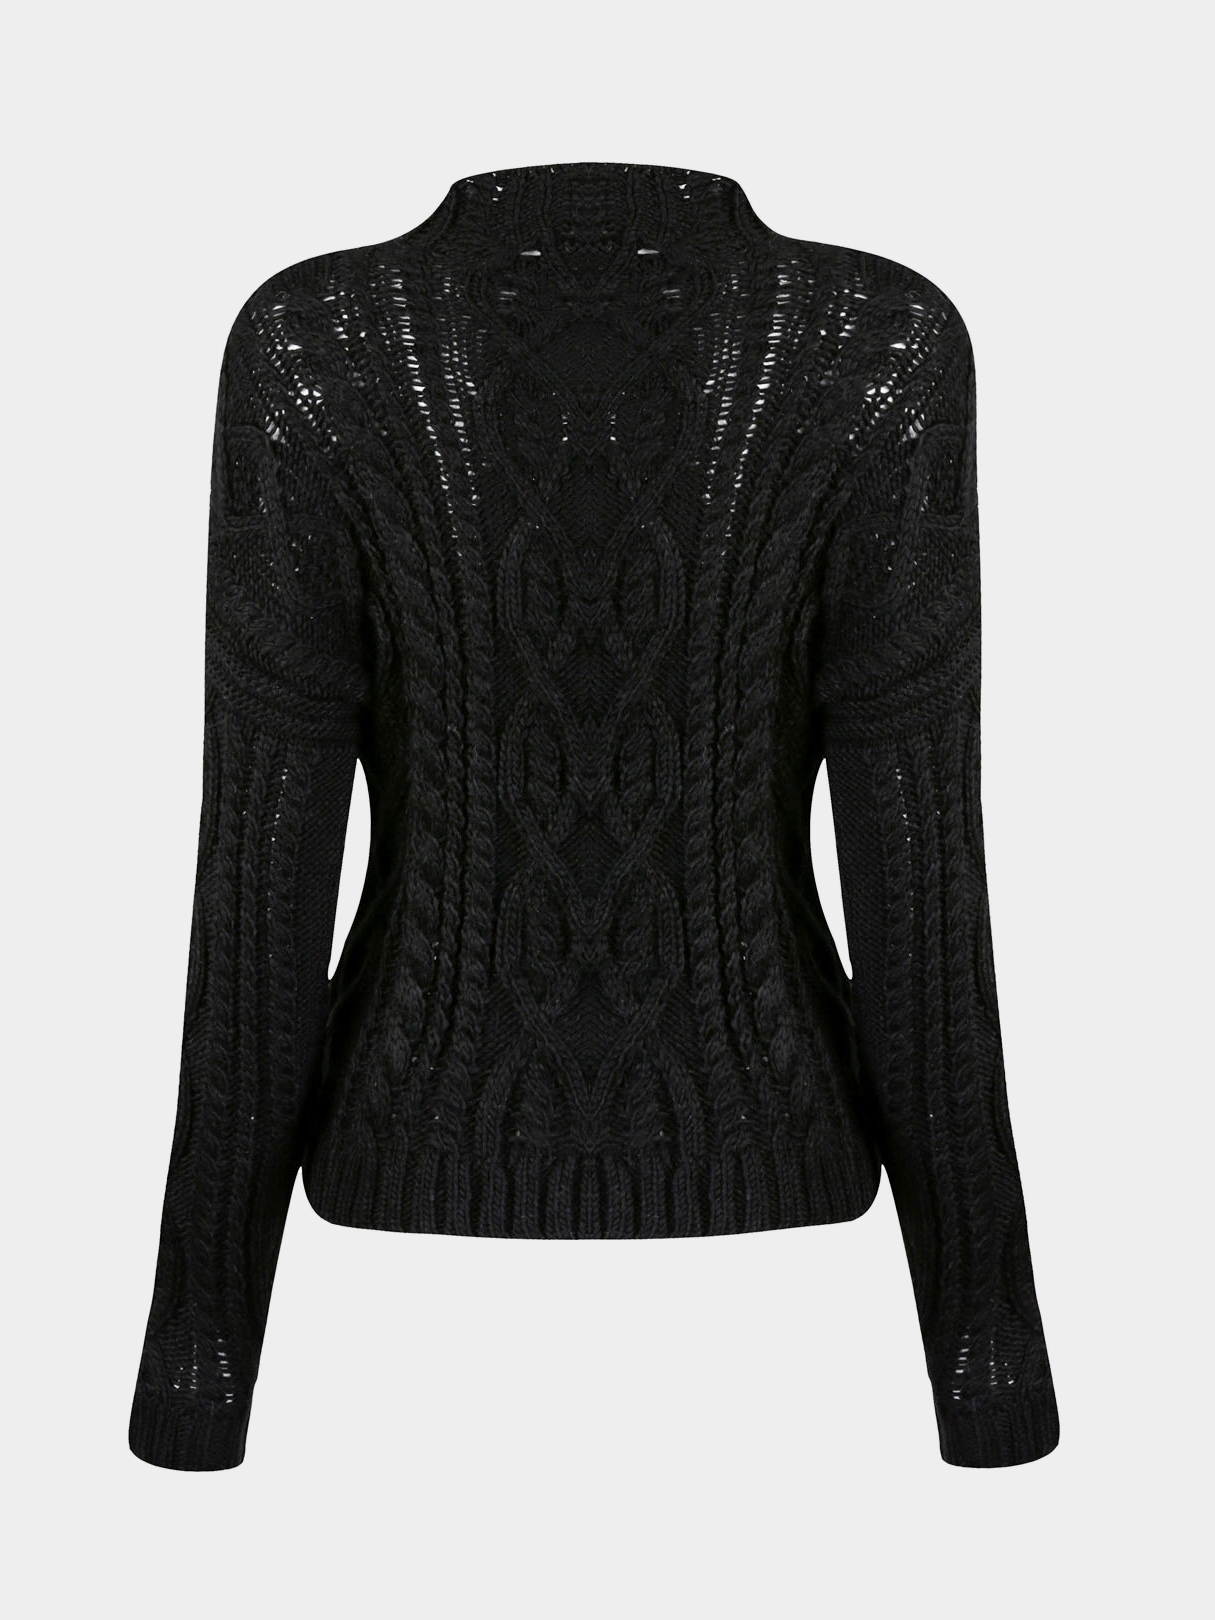 Jacquard Knit Jumper in Black от Yoins.com INT